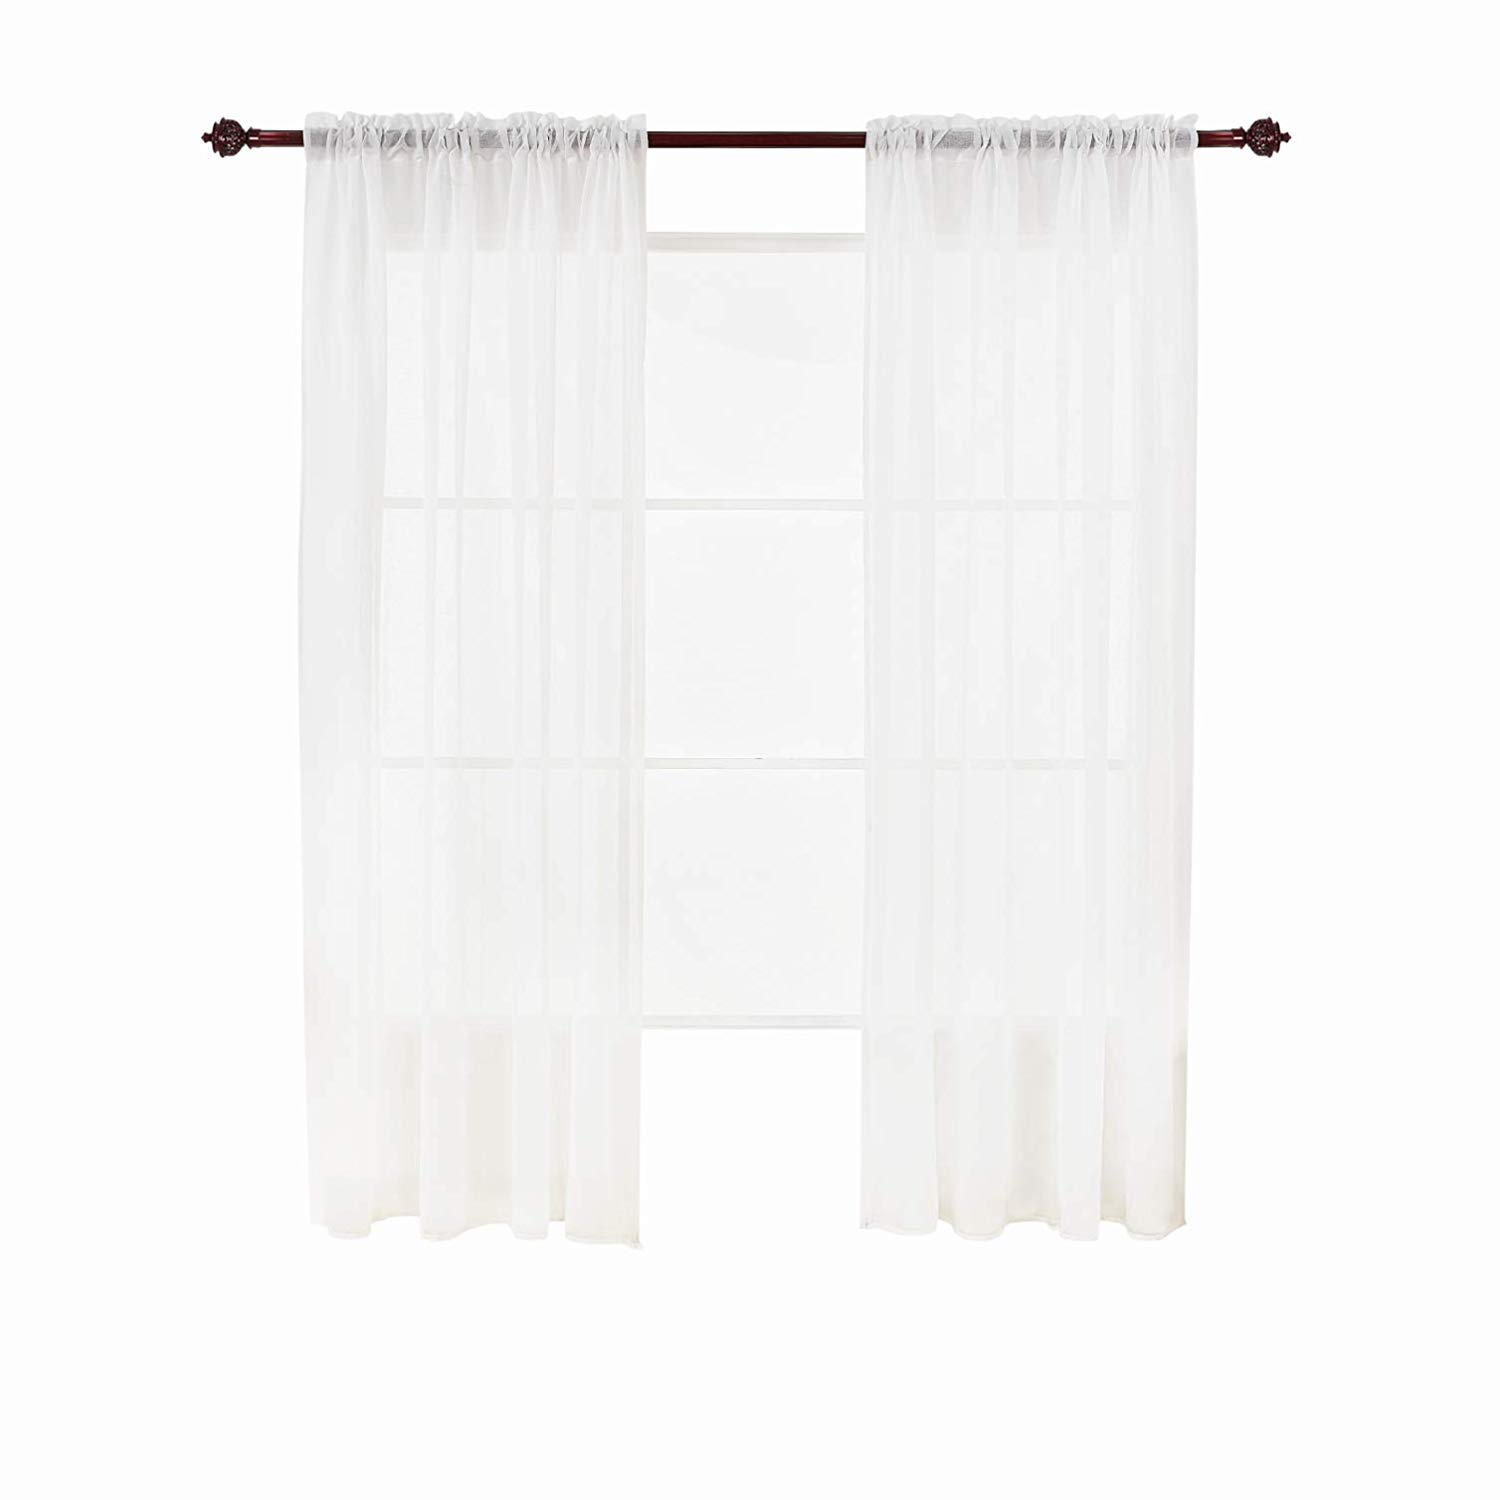 Cheap White Rod Pocket Curtains Find White Rod Pocket Curtains